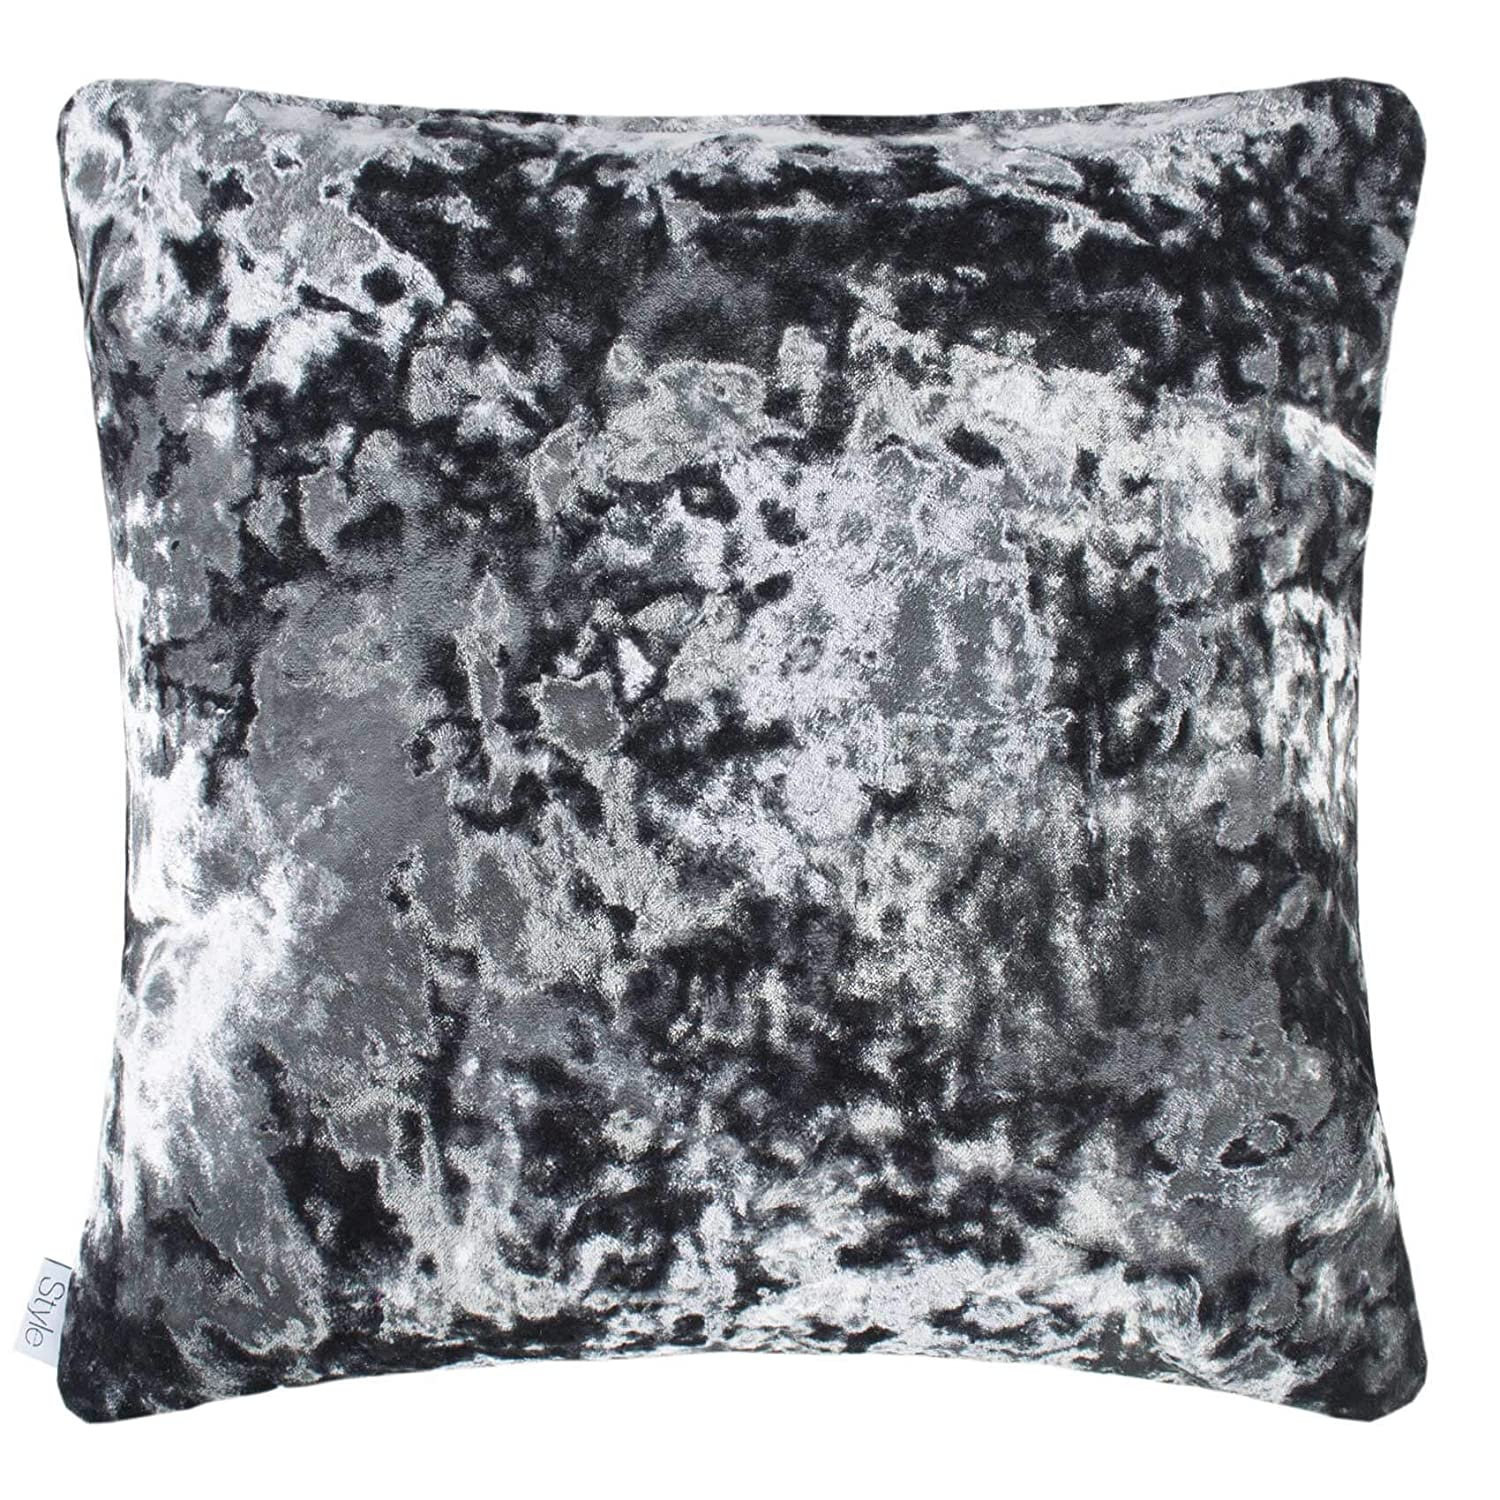 Style Merlin Luxury Faux Crushed Velvet Square Feather Filled Cushion Plumb 43cm X 43cm